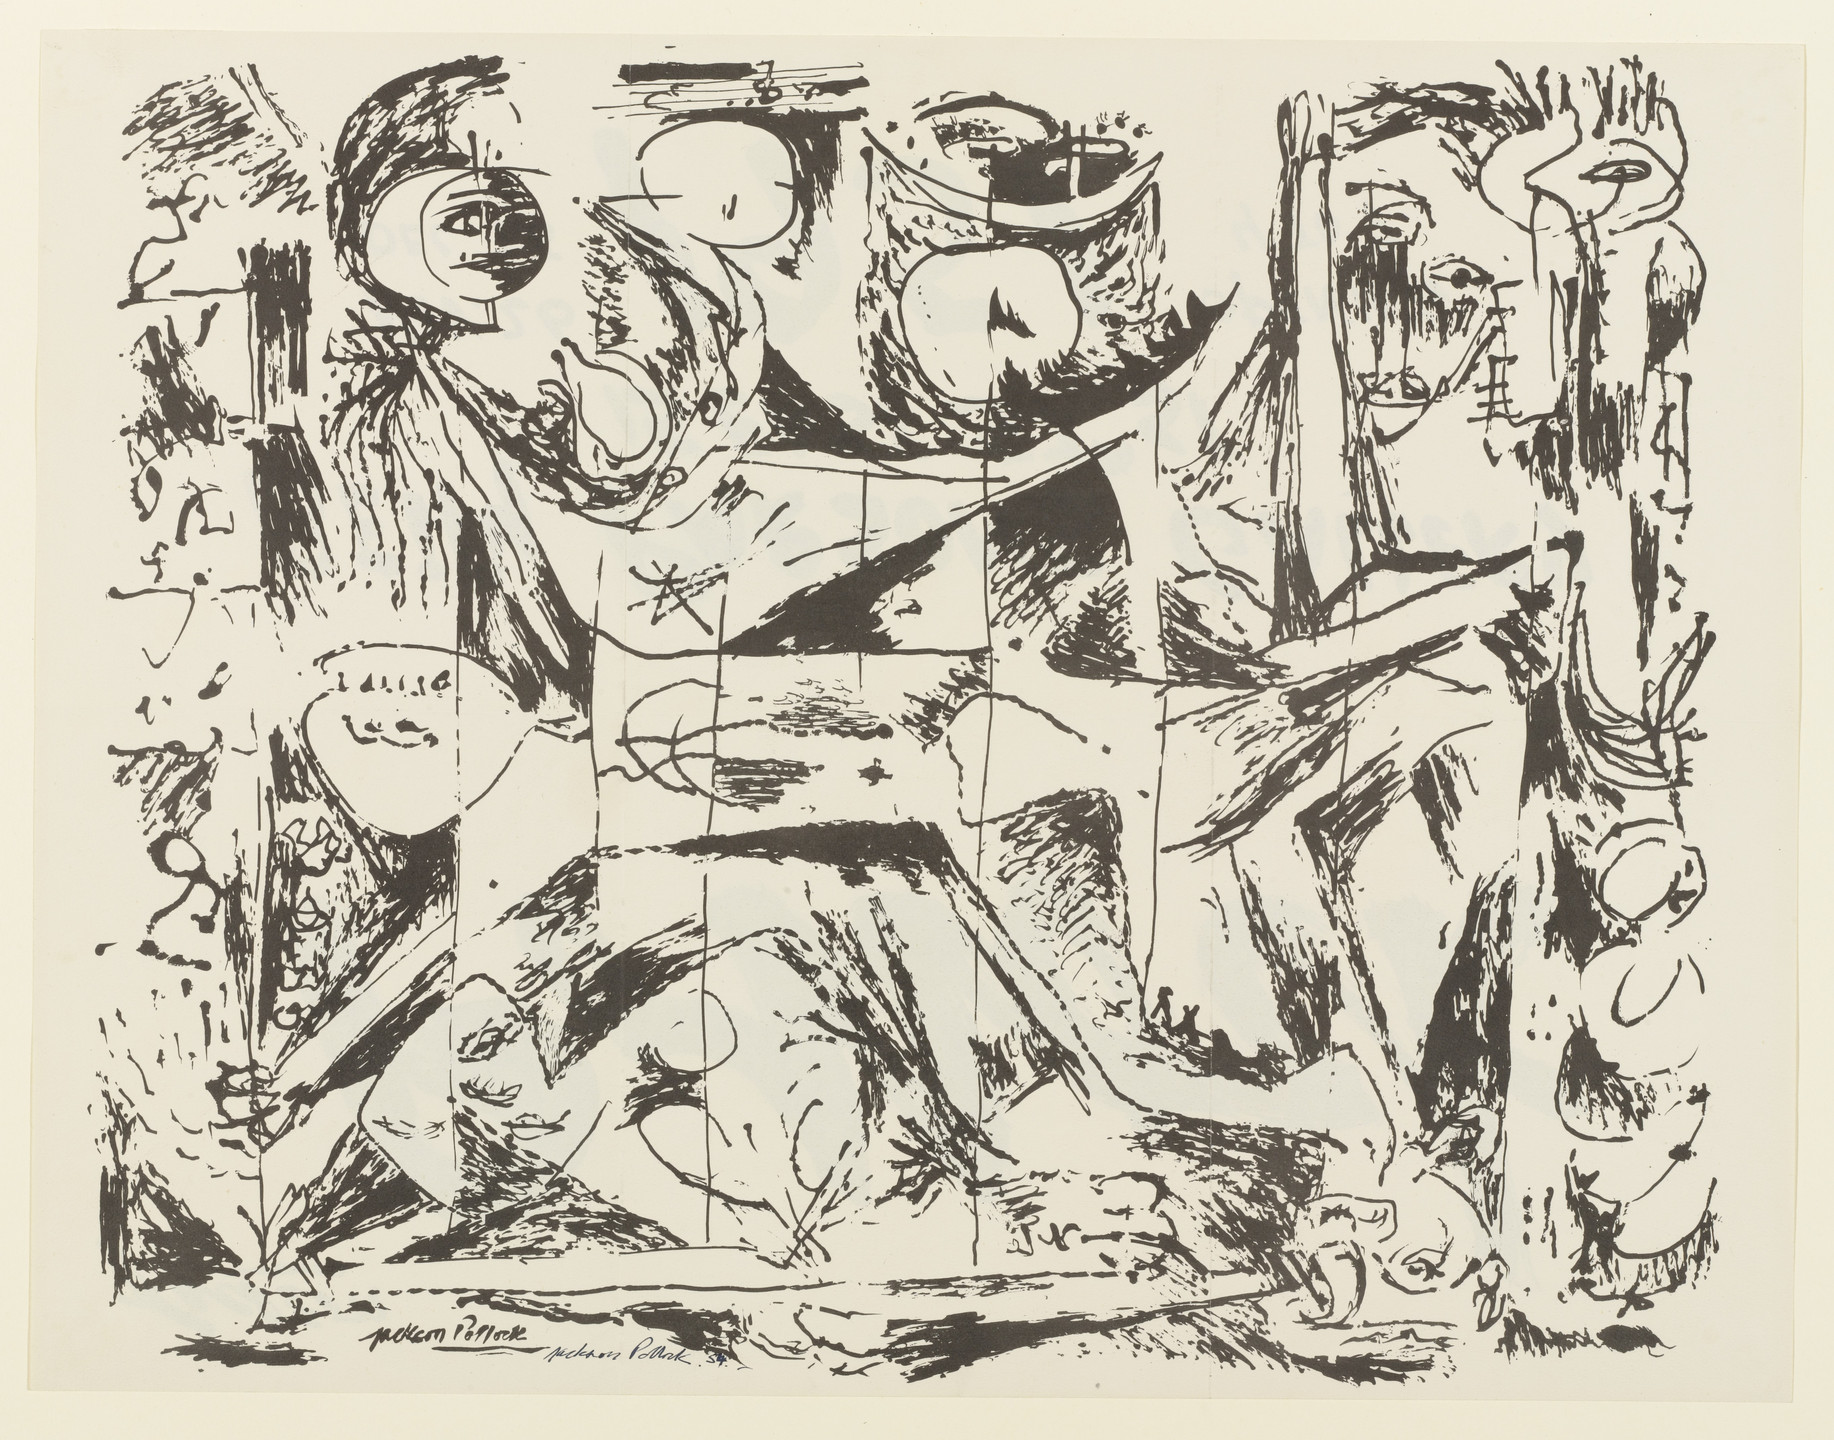 Jackson Pollock. Exhibition Announcement, Betty Parsons Gallery, Nov. 26-Dec. 15, 1951. 1951, signed 1954